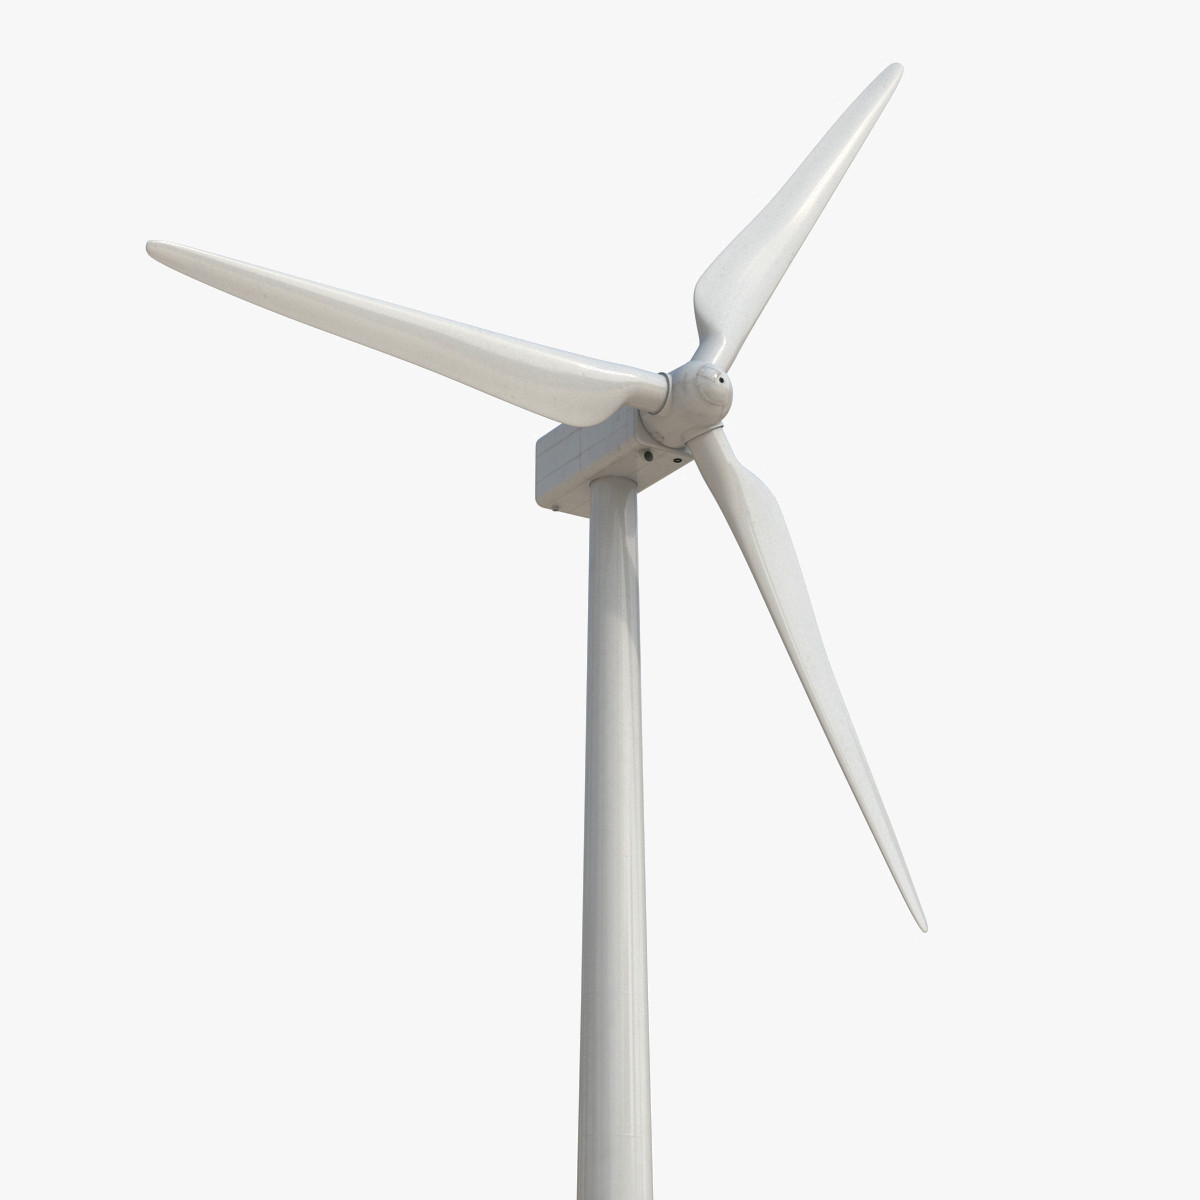 3d model of Wind Turbine Generic 00.jpg